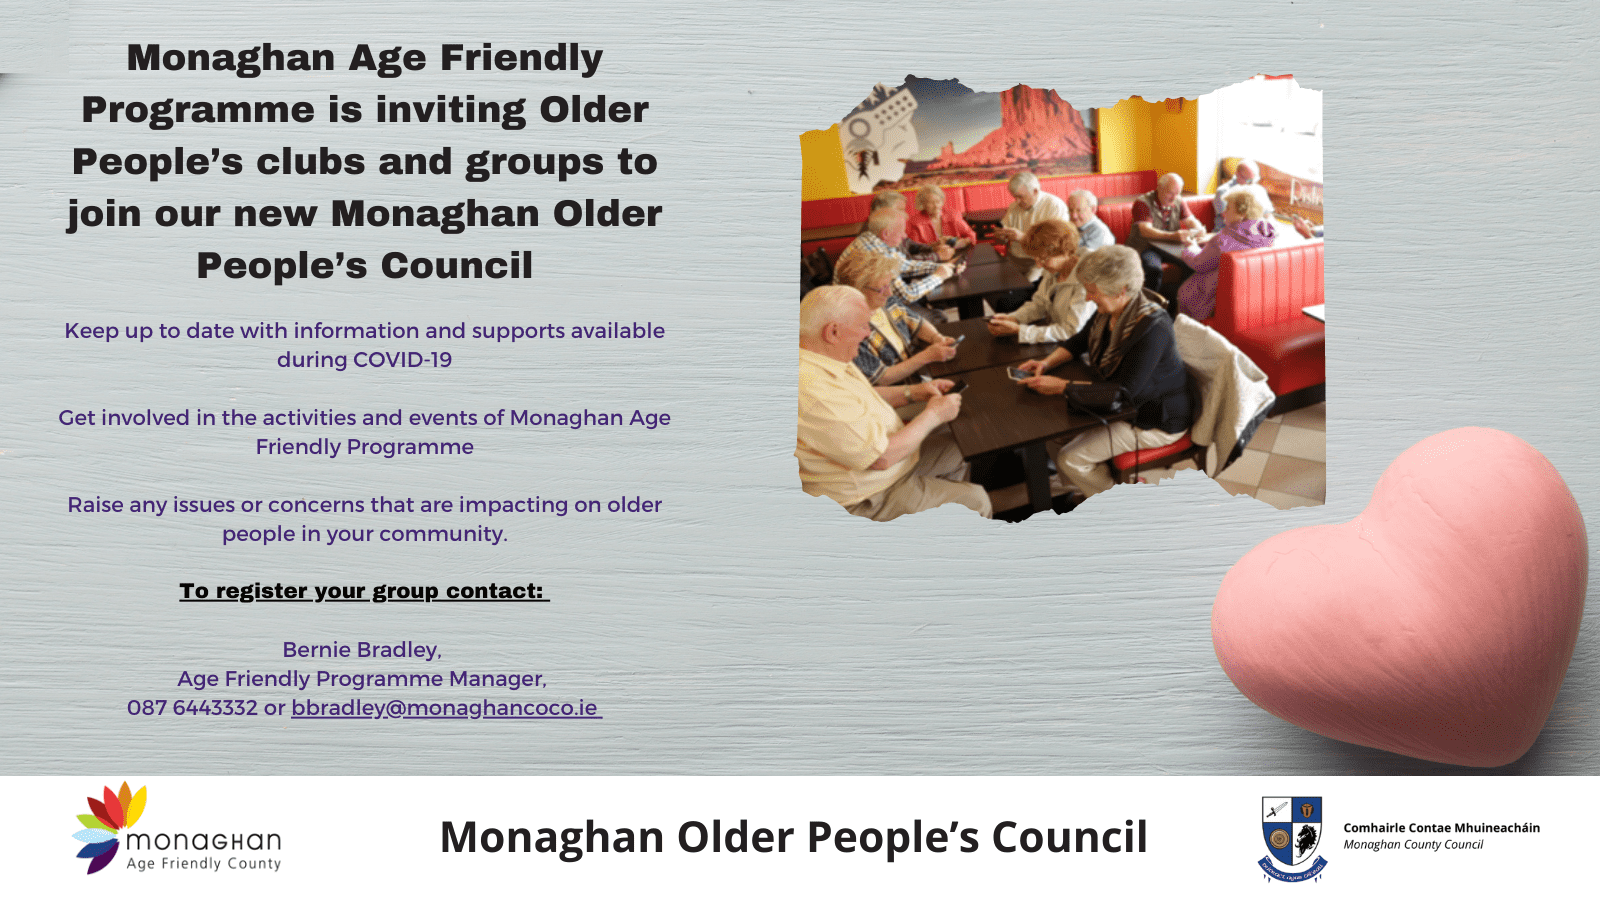 Monaghan Age Friendly Programme is inviting Older People's clubs and groups to join our new Monaghan Older People's Council